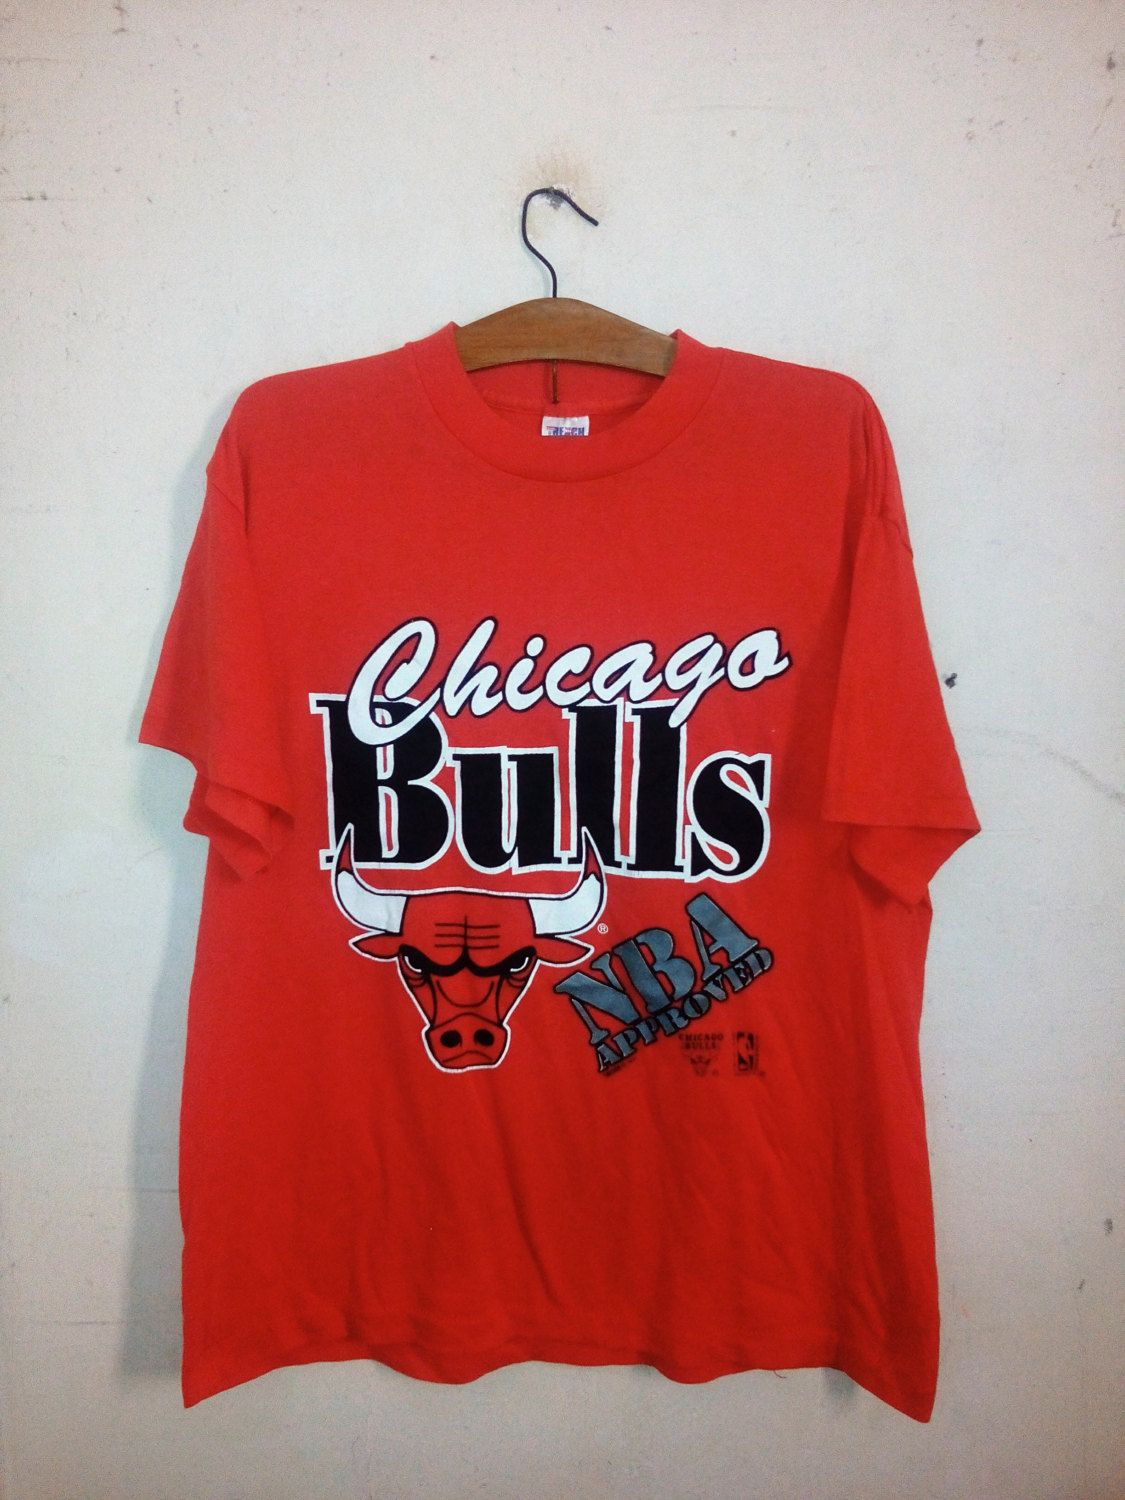 Vintage Chicago Bulls NBA pro basketball club Official NBA Product Jordan  90's street fashion Swag Lolife Unisex Red Sz L on Etsy